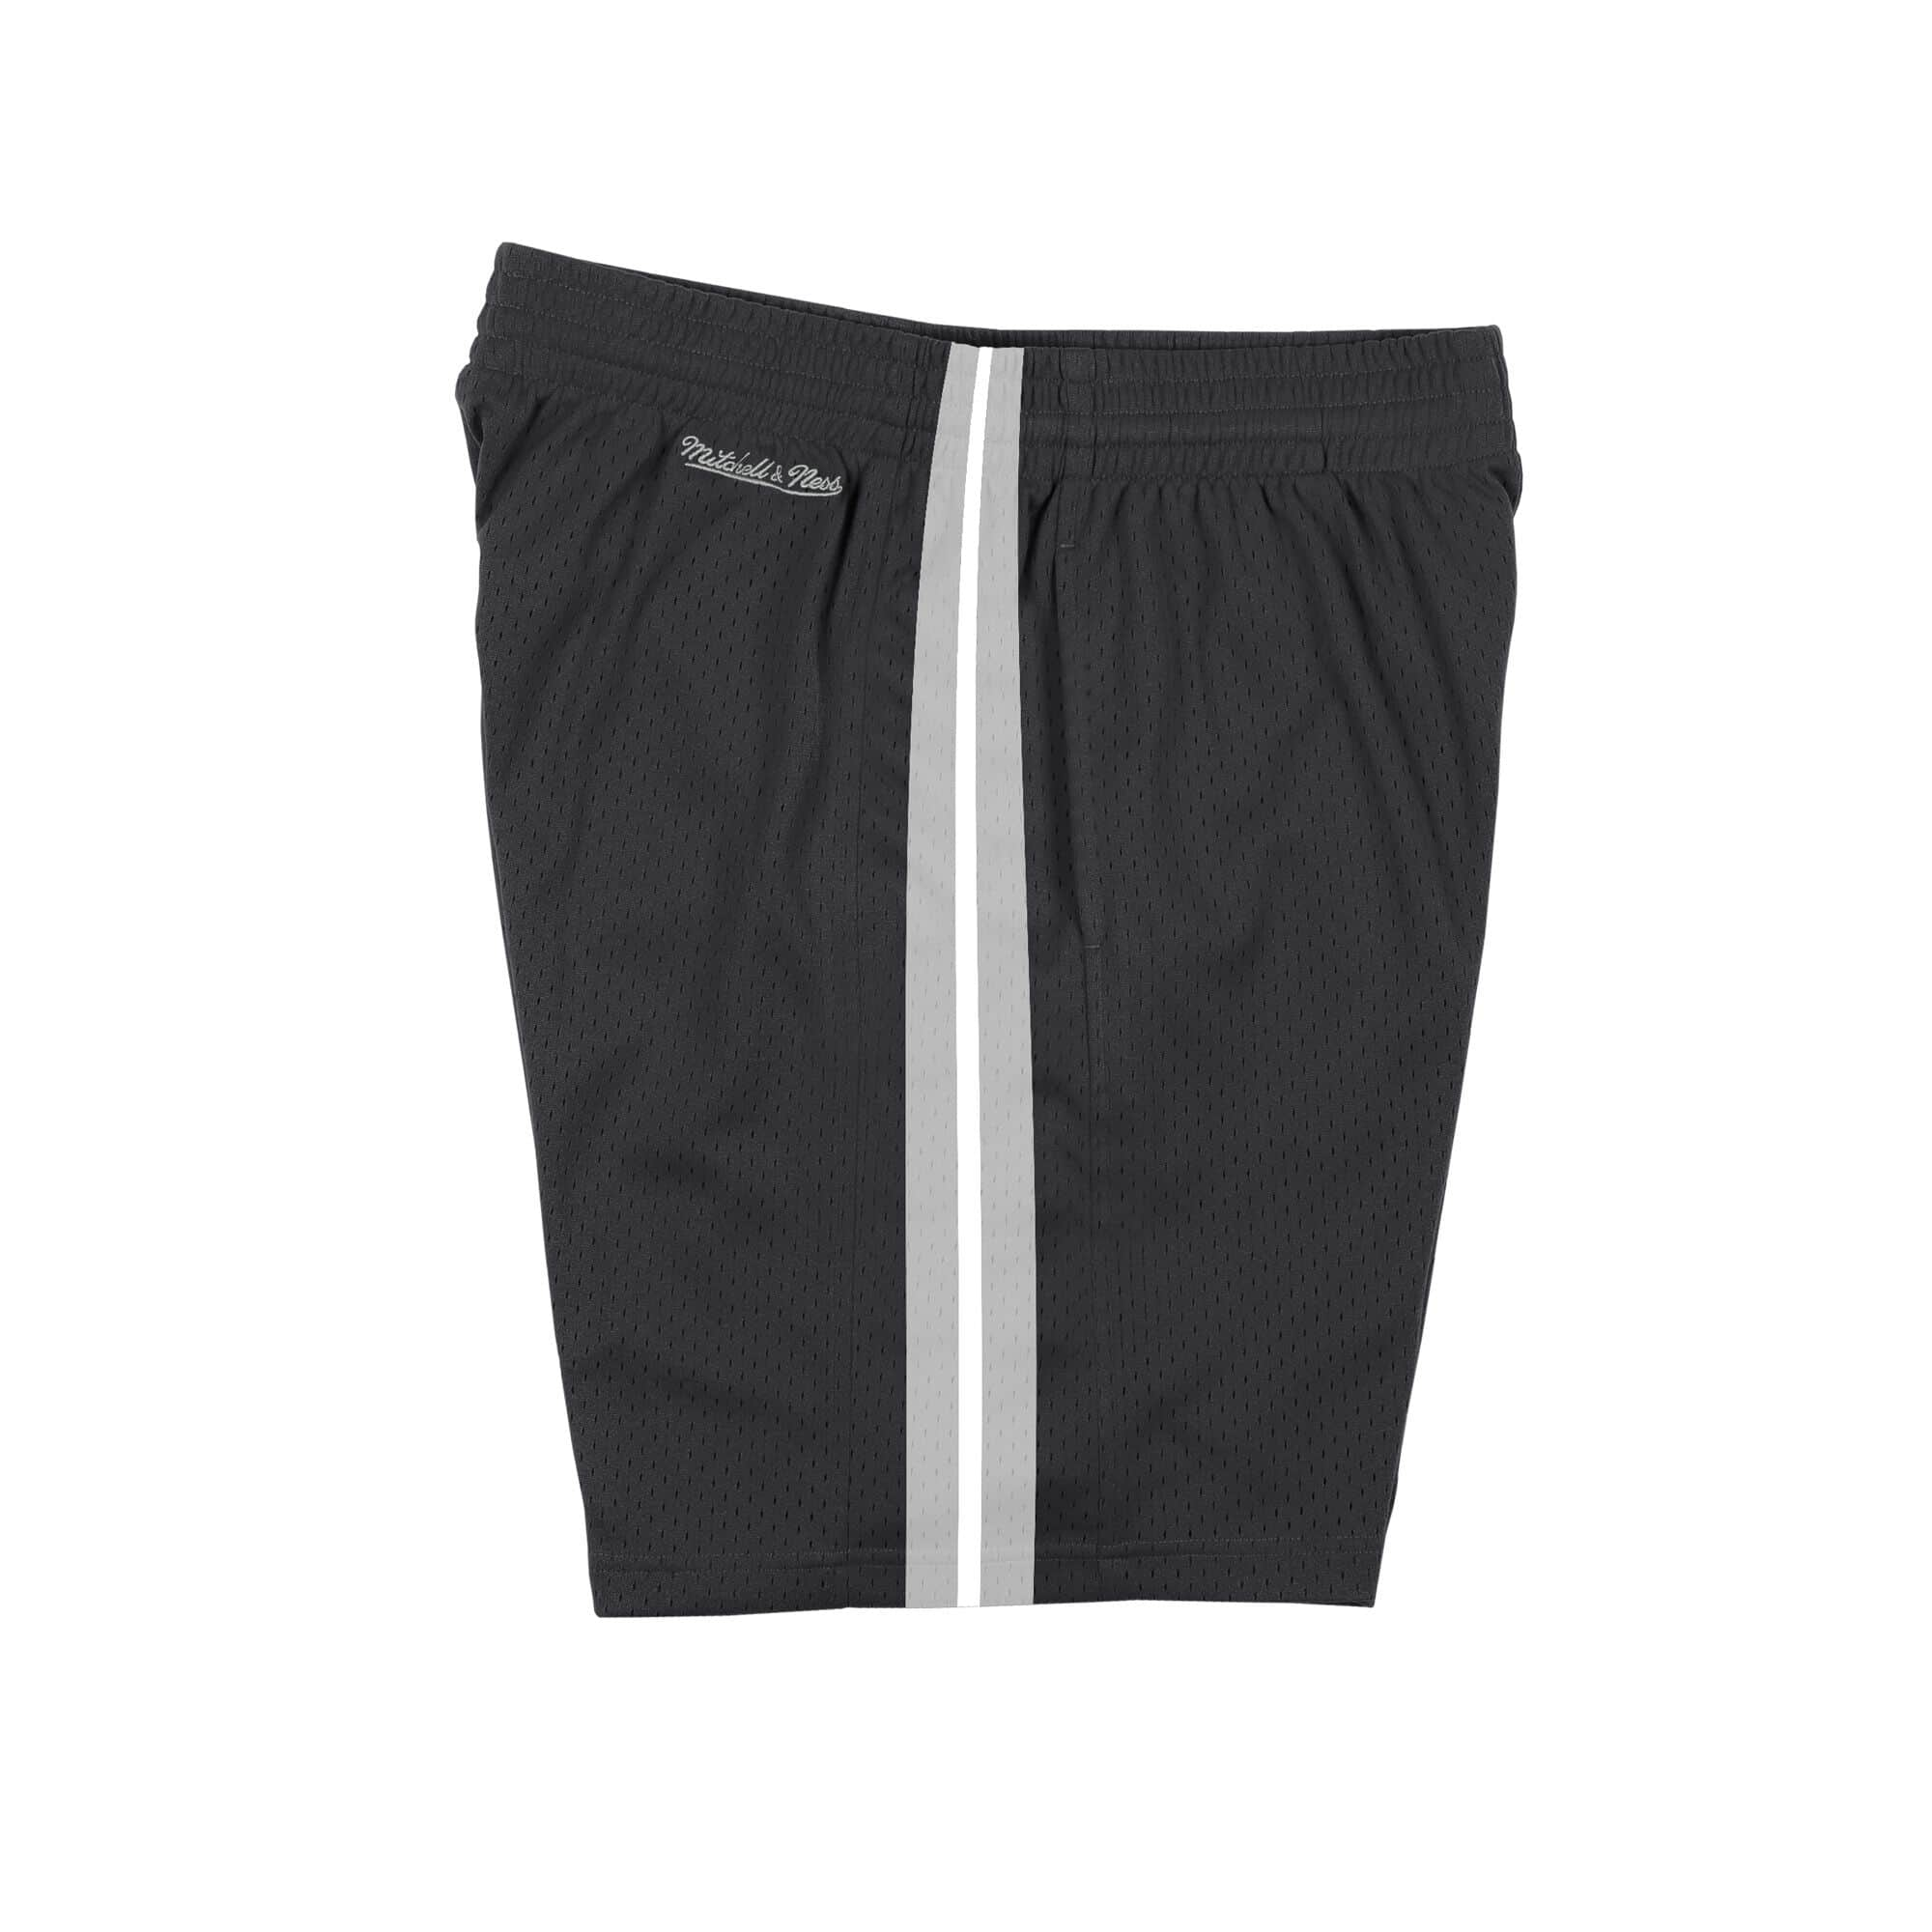 Team DNA Shorts - Oakland Raiders